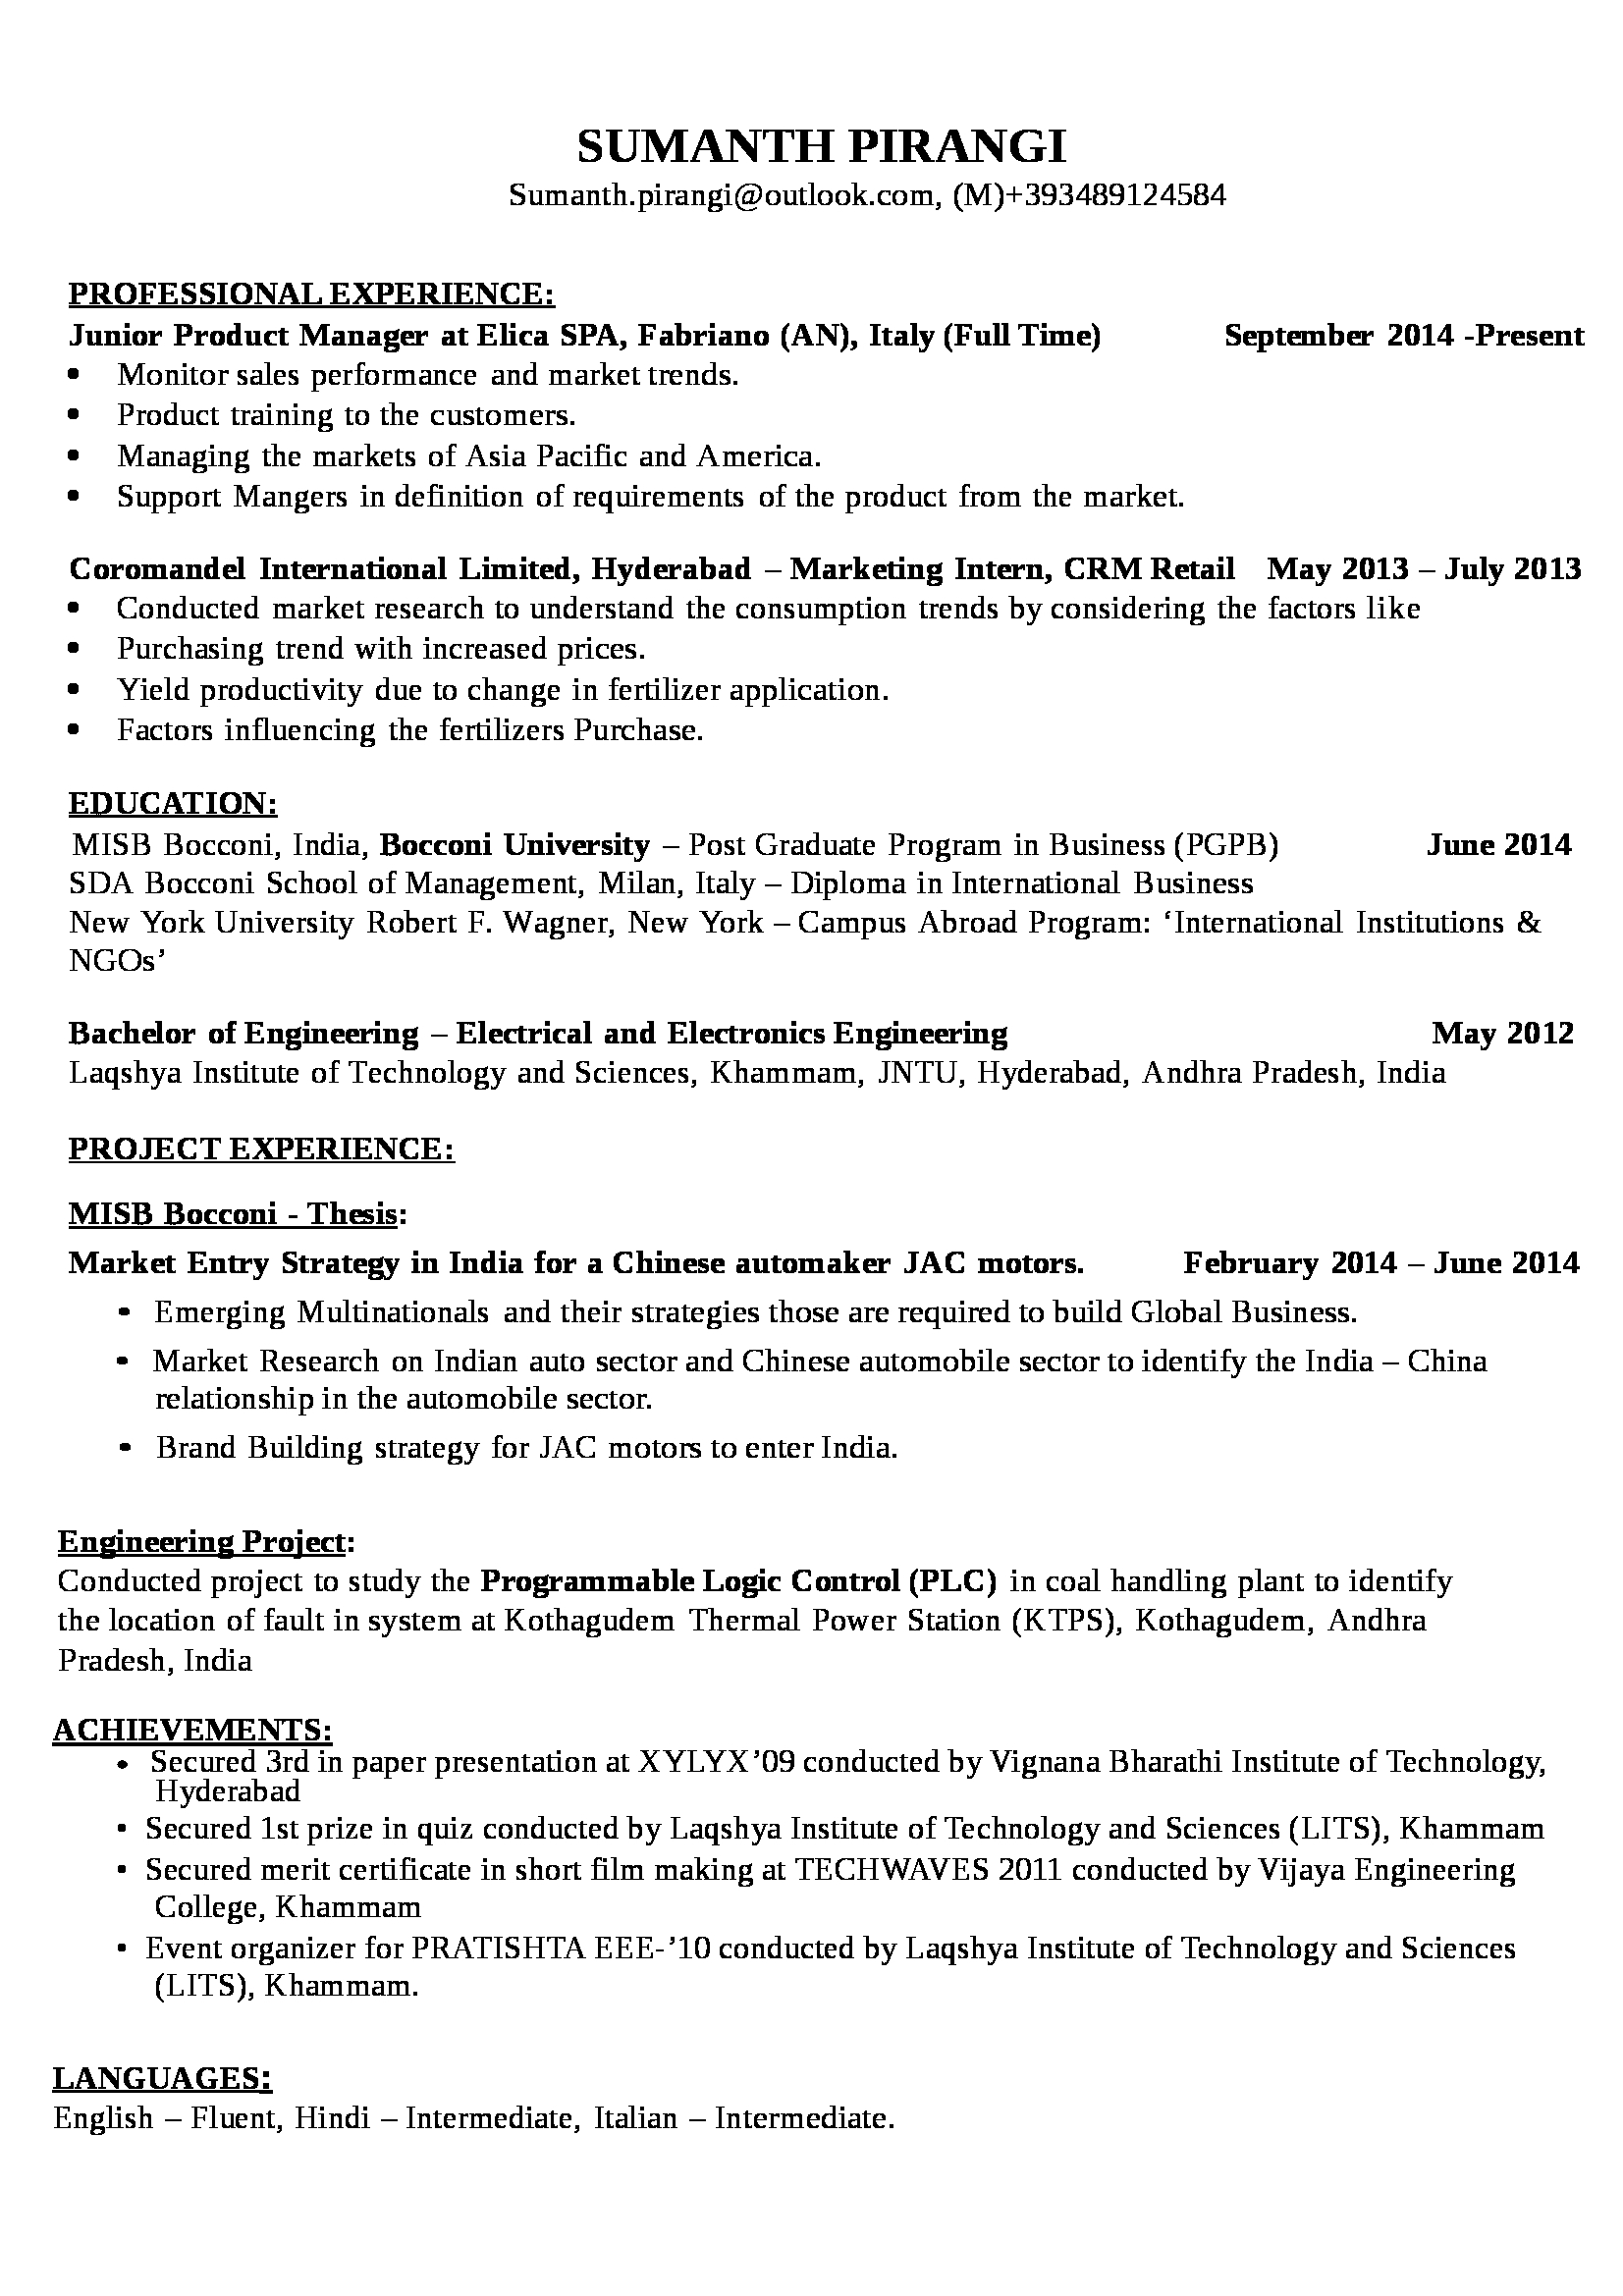 021 Research Paper Sumanth Pirangi Cv Essay On Education System In India And Magnificent Abroad Full